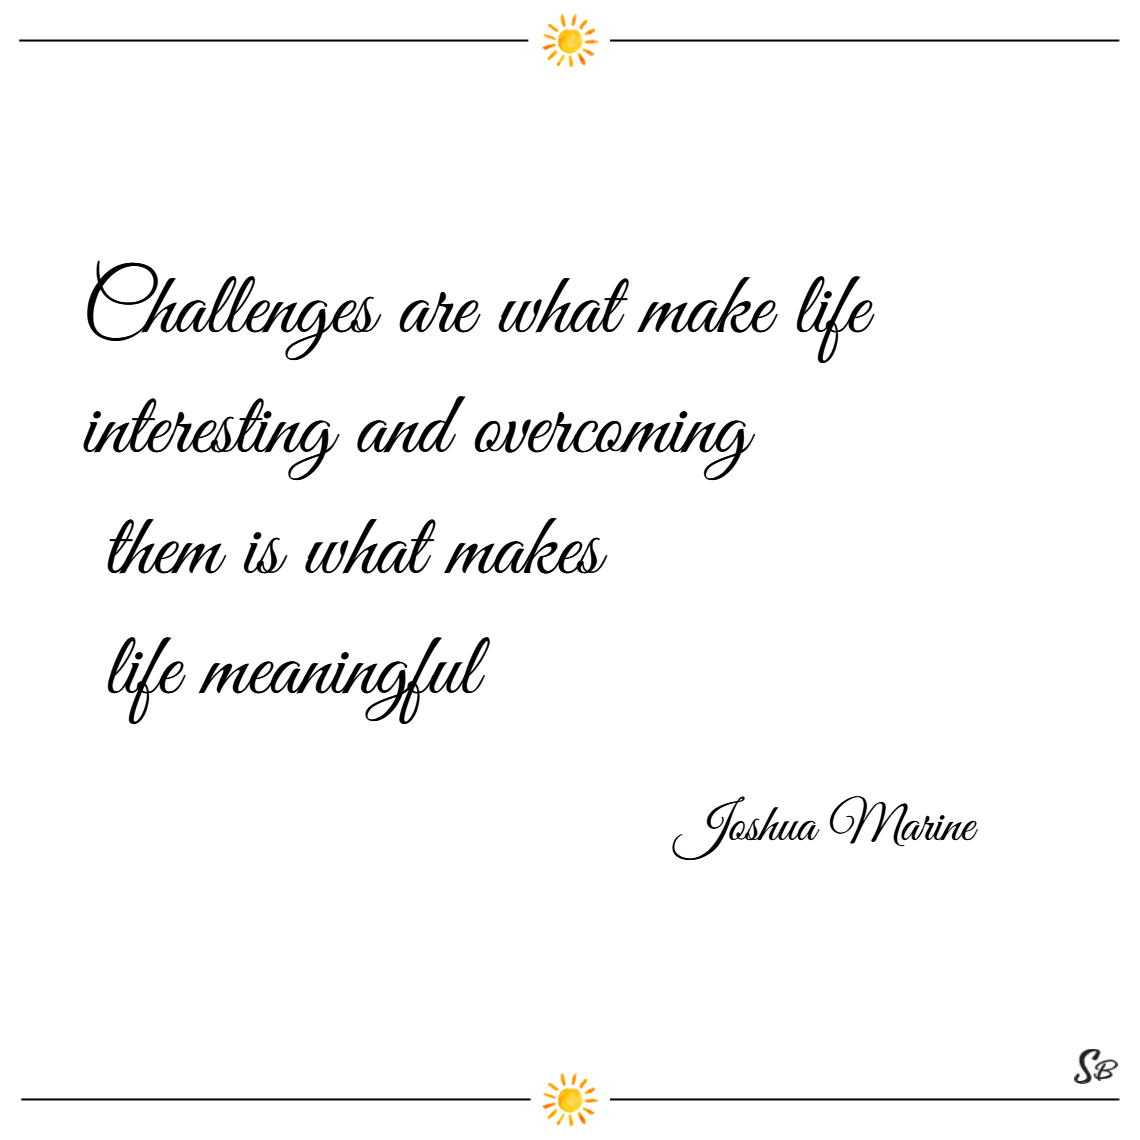 Challenges are what make life interesting and overcoming them is what makes life meaningful. – joshua marine